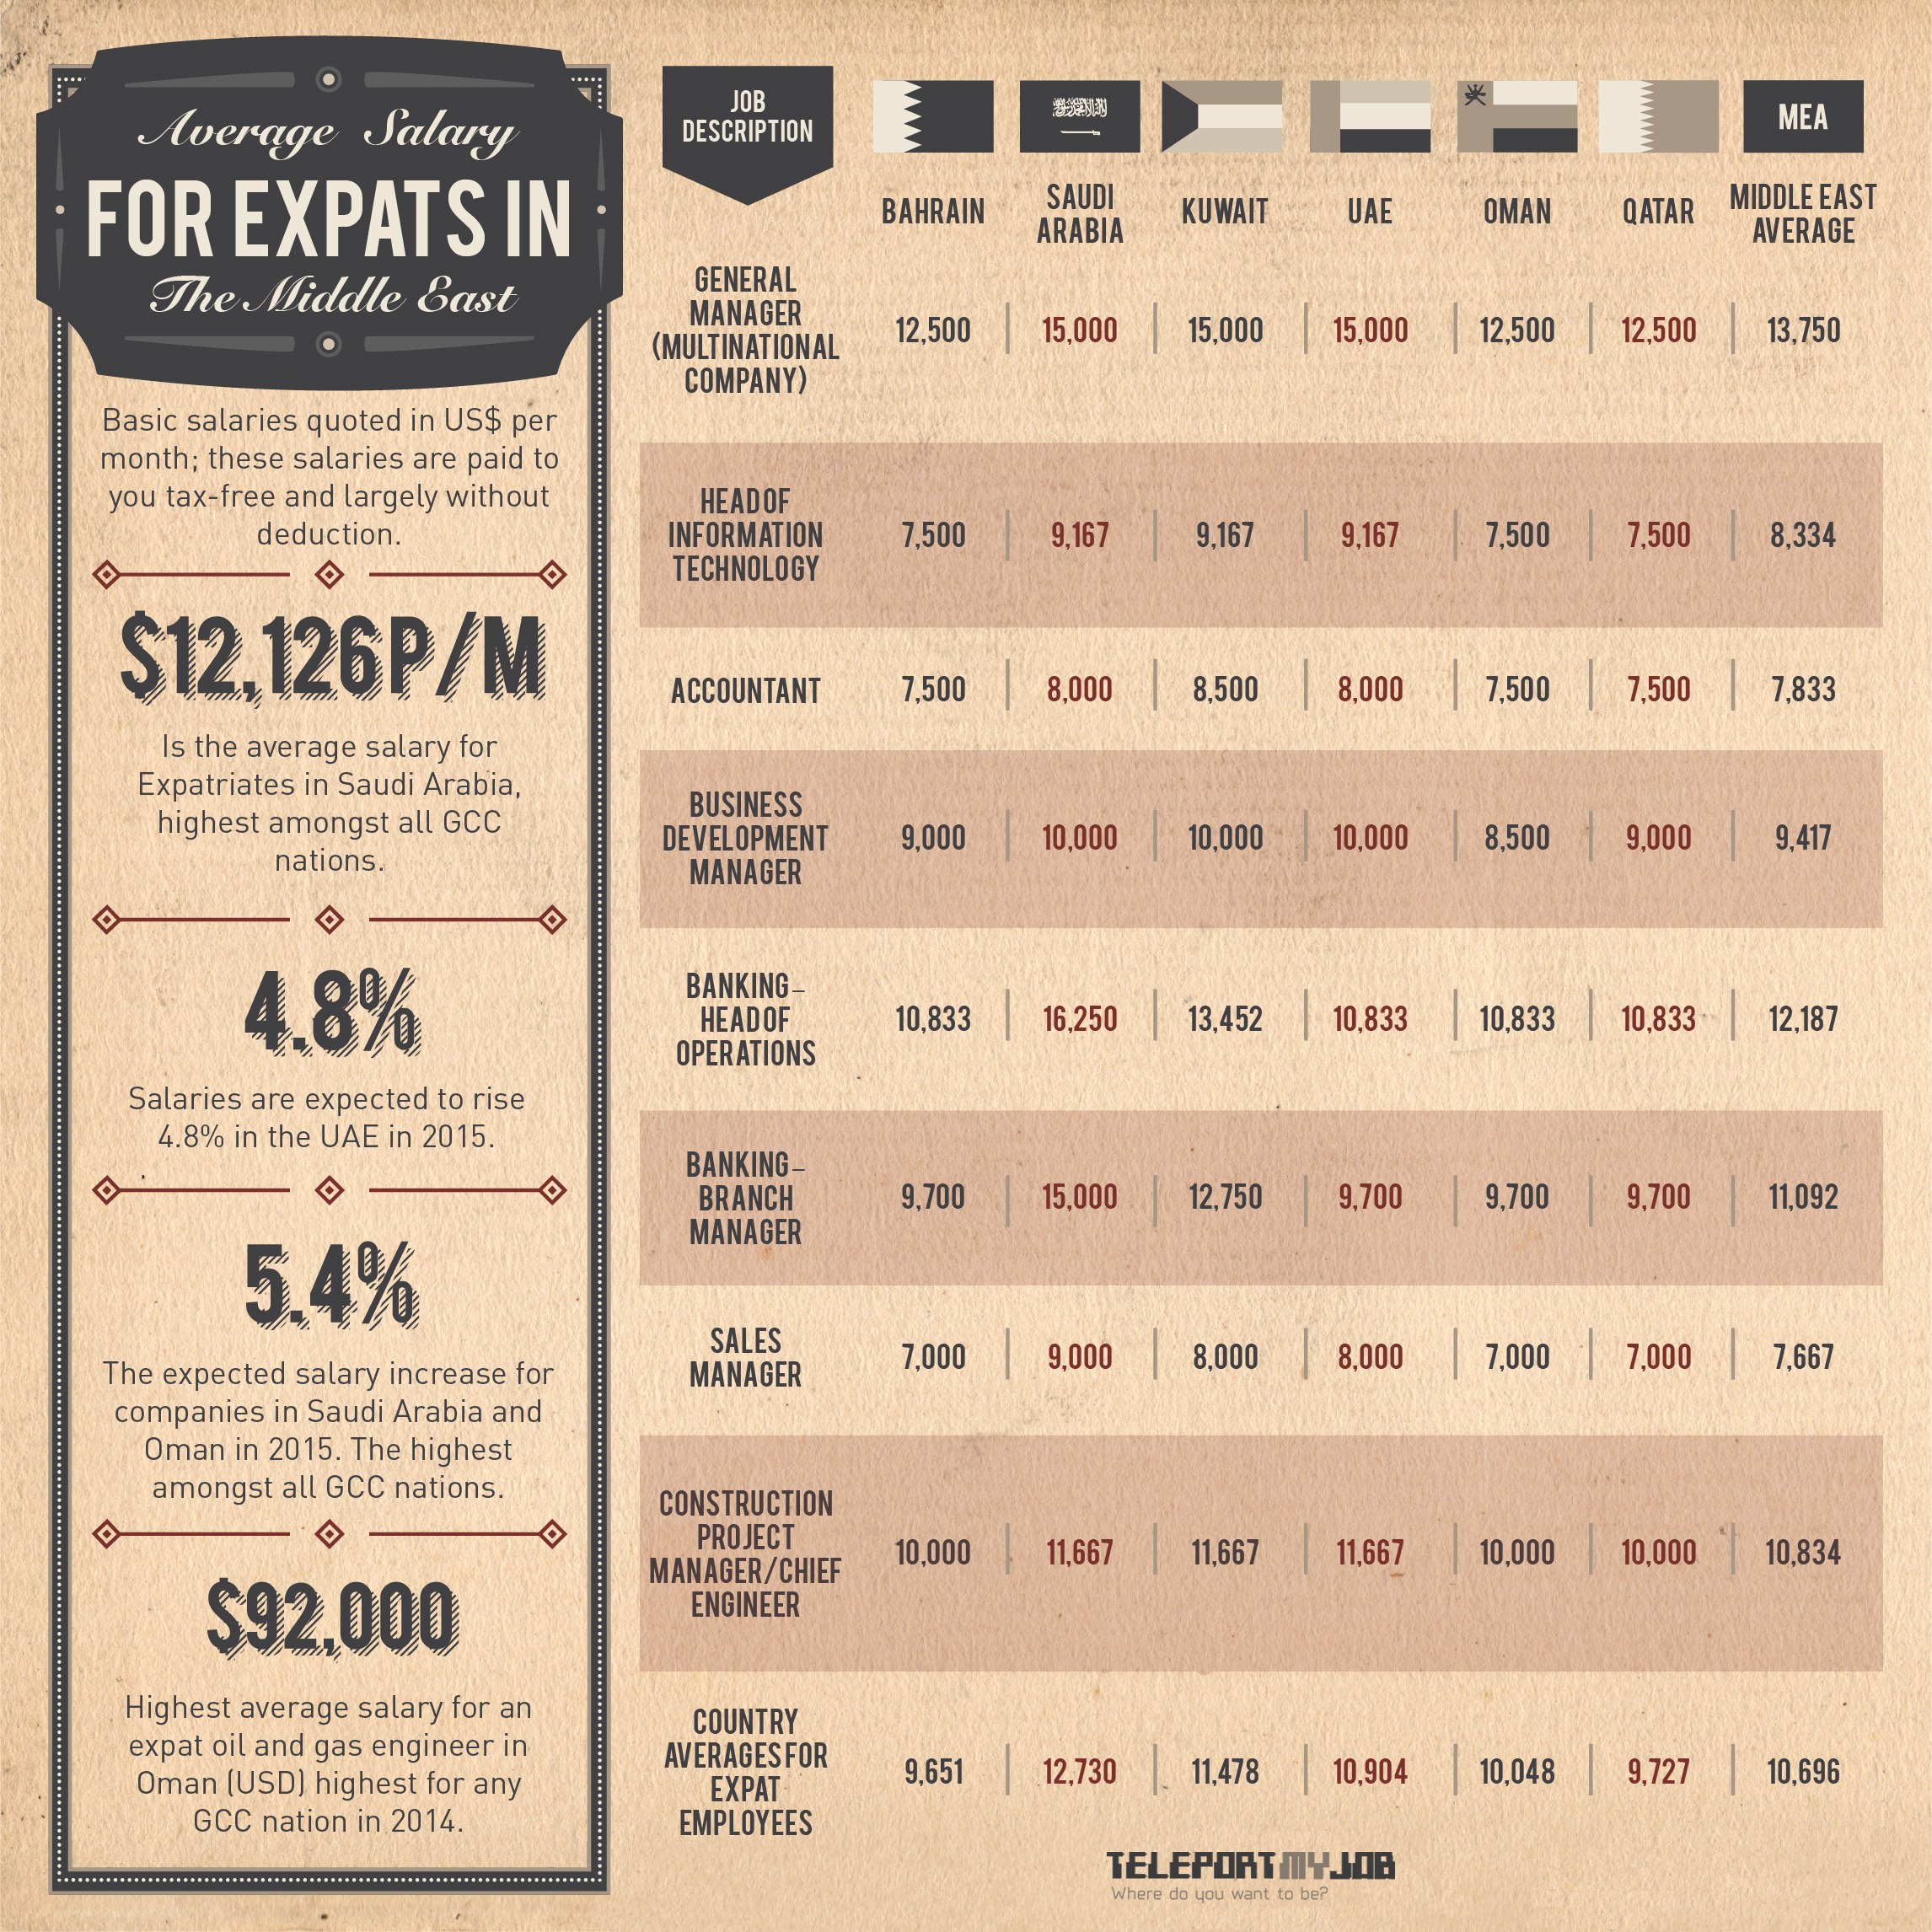 Average Expat Salary in the Middle East